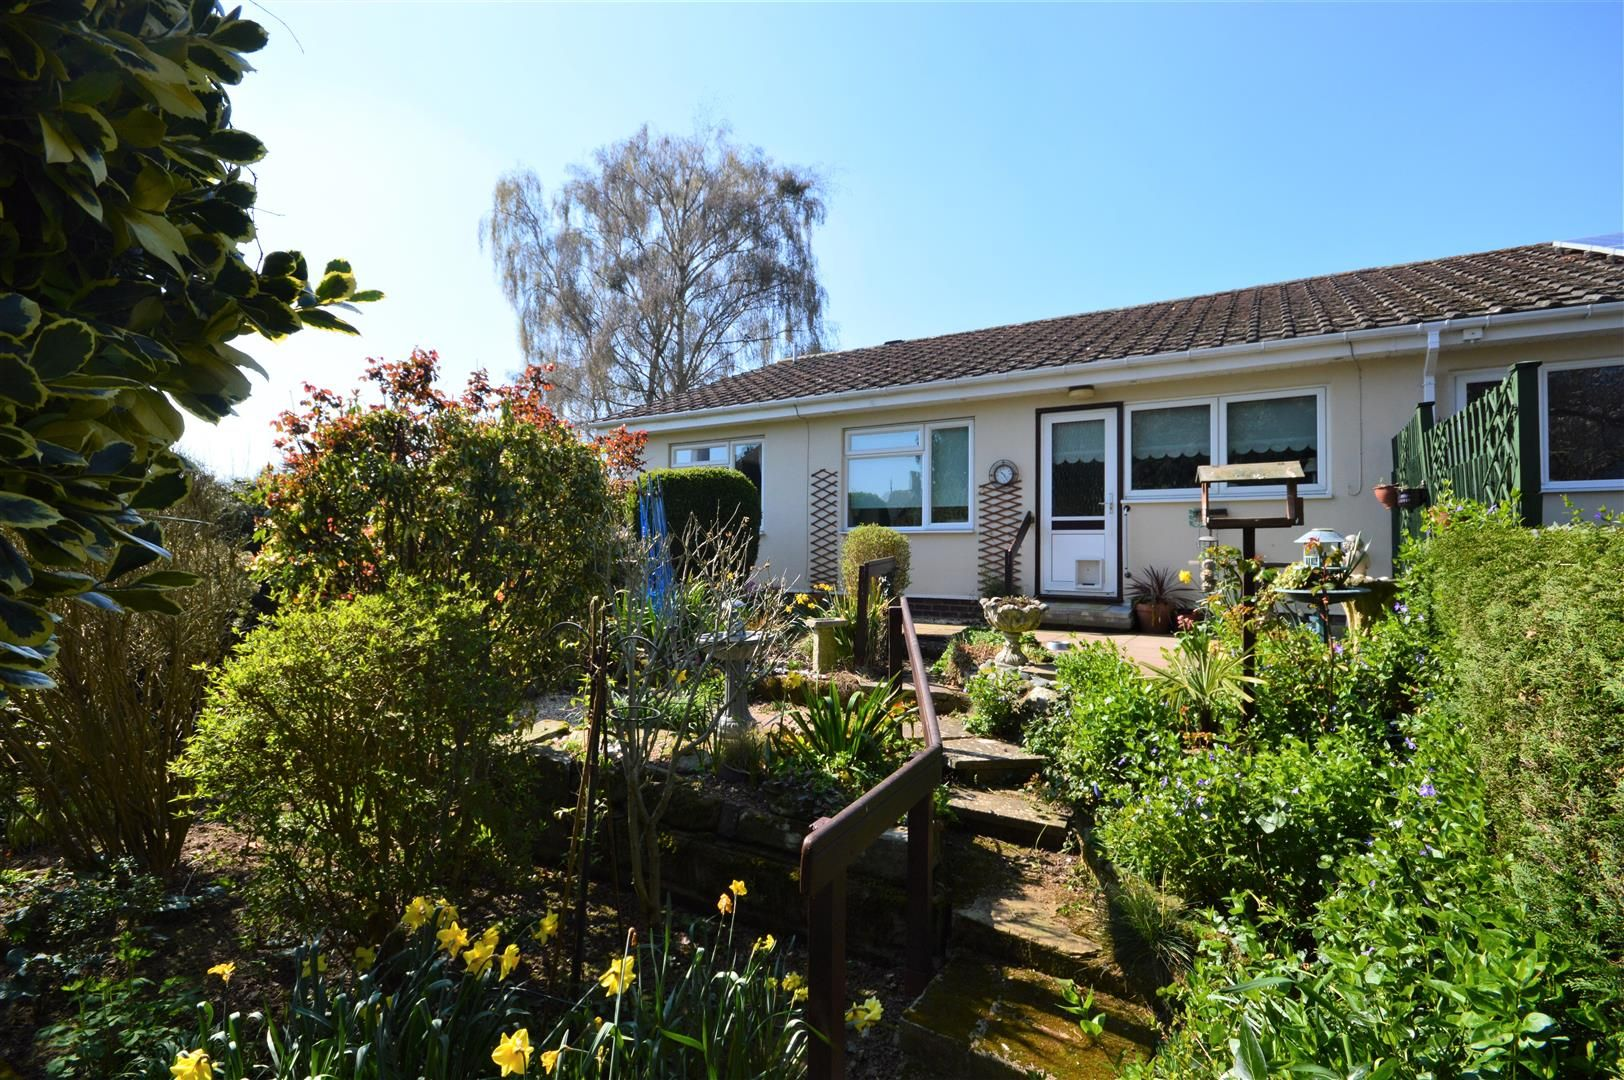 2 bed semi-detached-bungalow for sale in Leominster  - Property Image 7